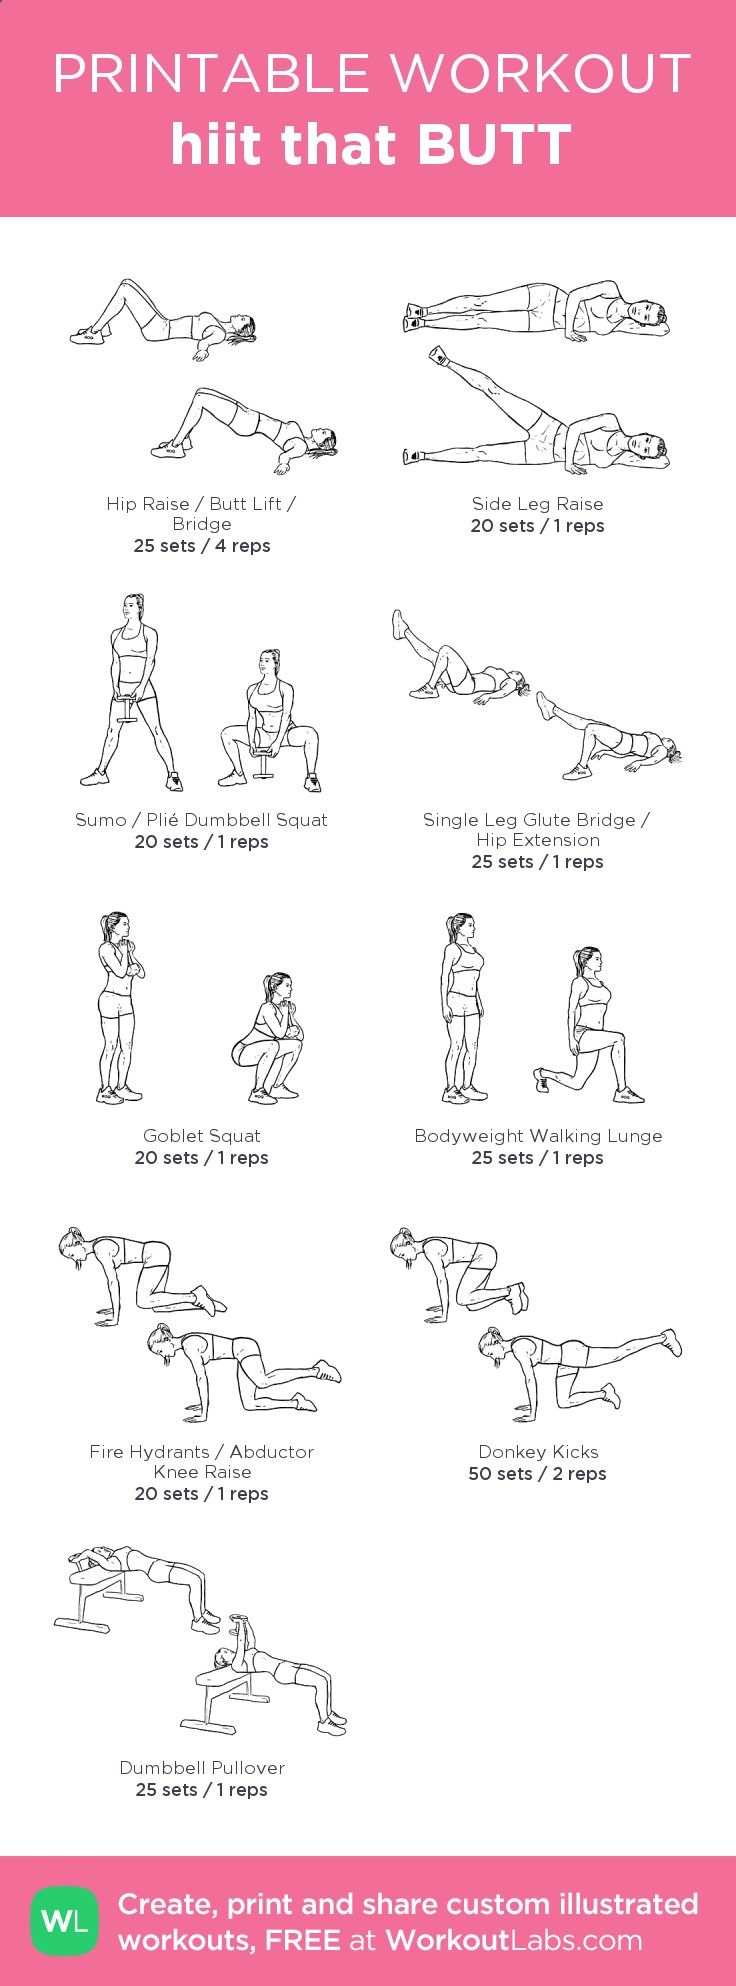 hiit that BUTT –my custom workout created at WorkoutLabs.com • Click through to download as printable PDF! #customworkout